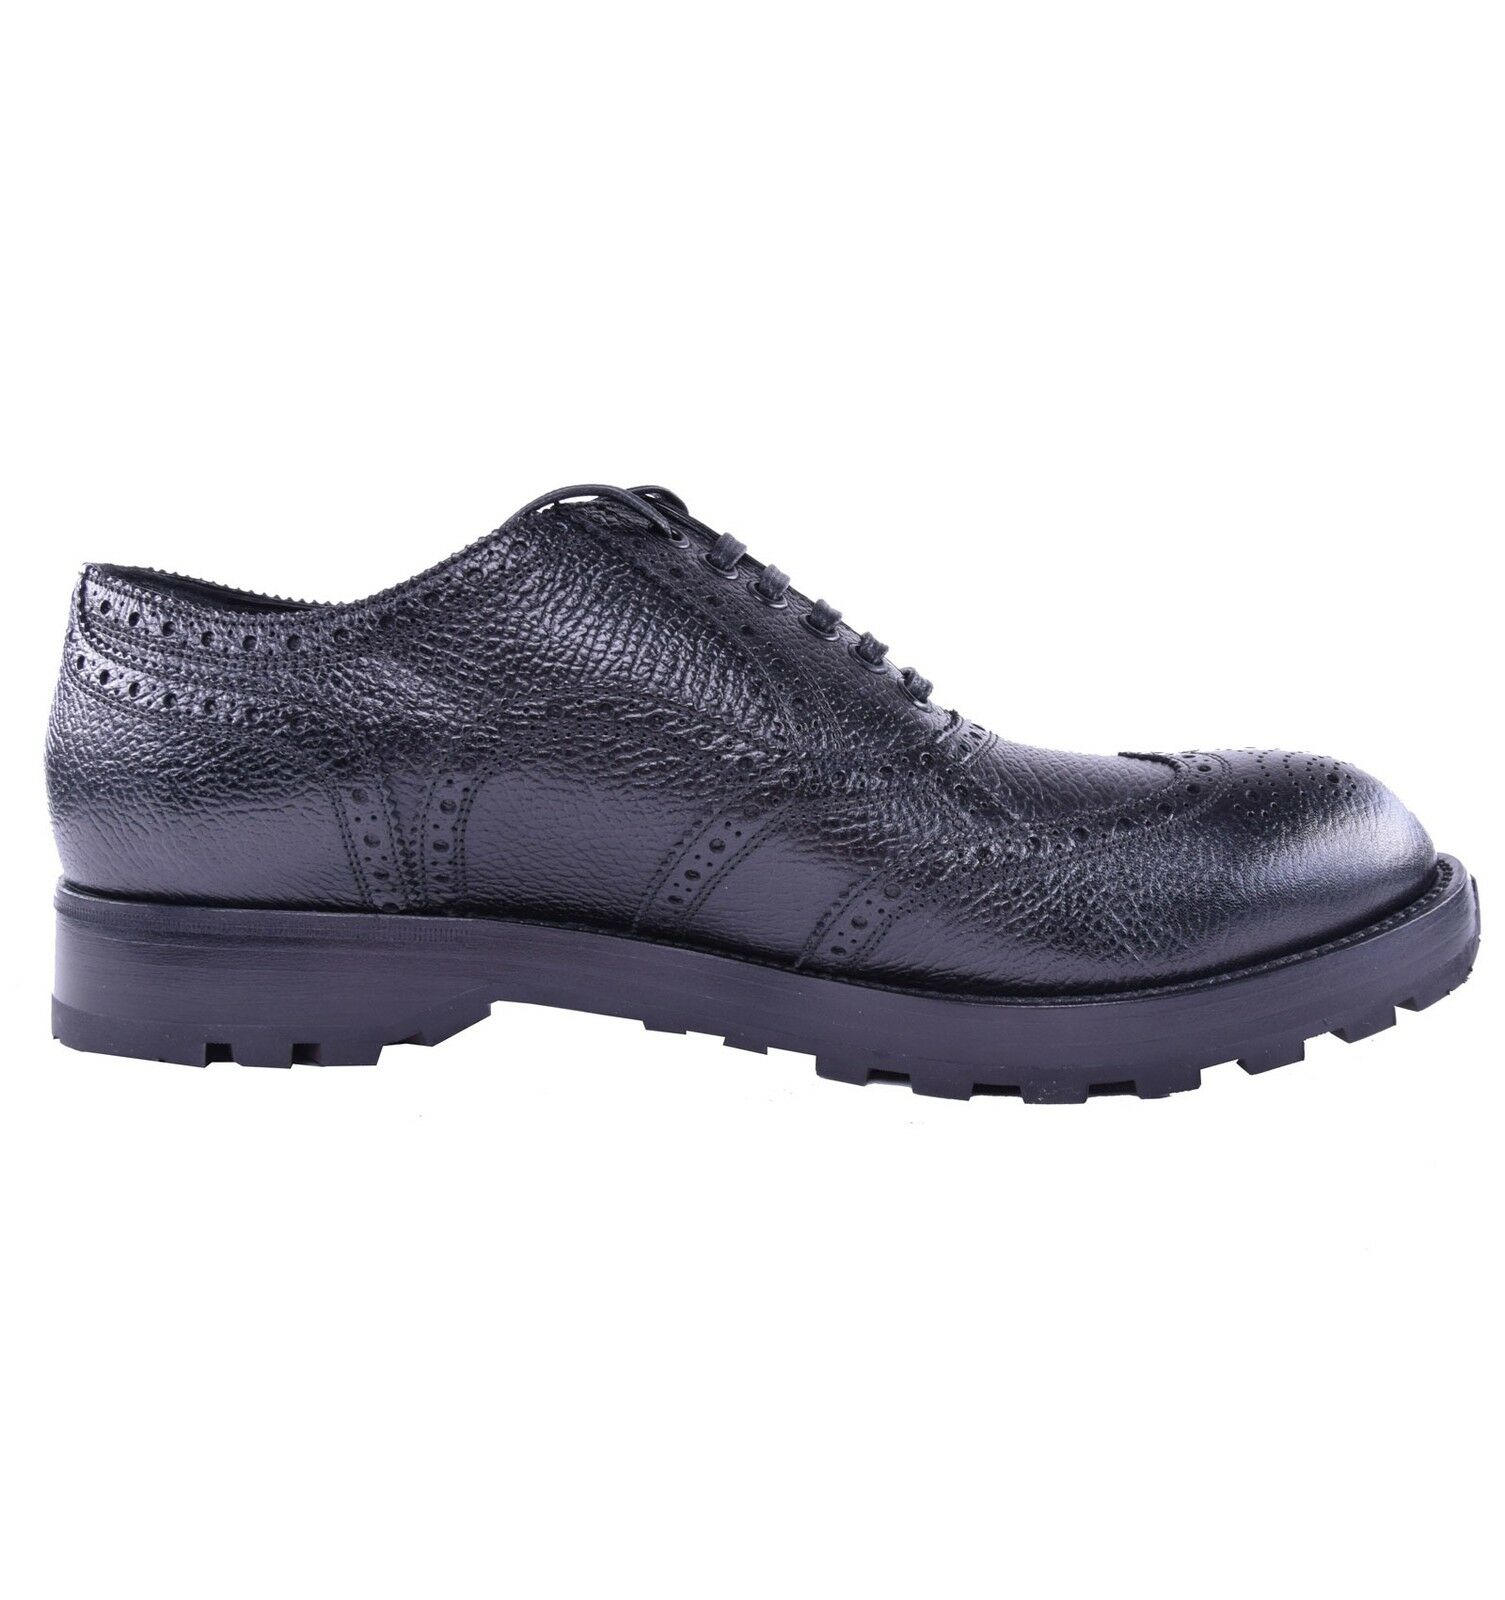 DOLCE & GABBANA Solid All-Weather Calf Leather Shoes Black 03890